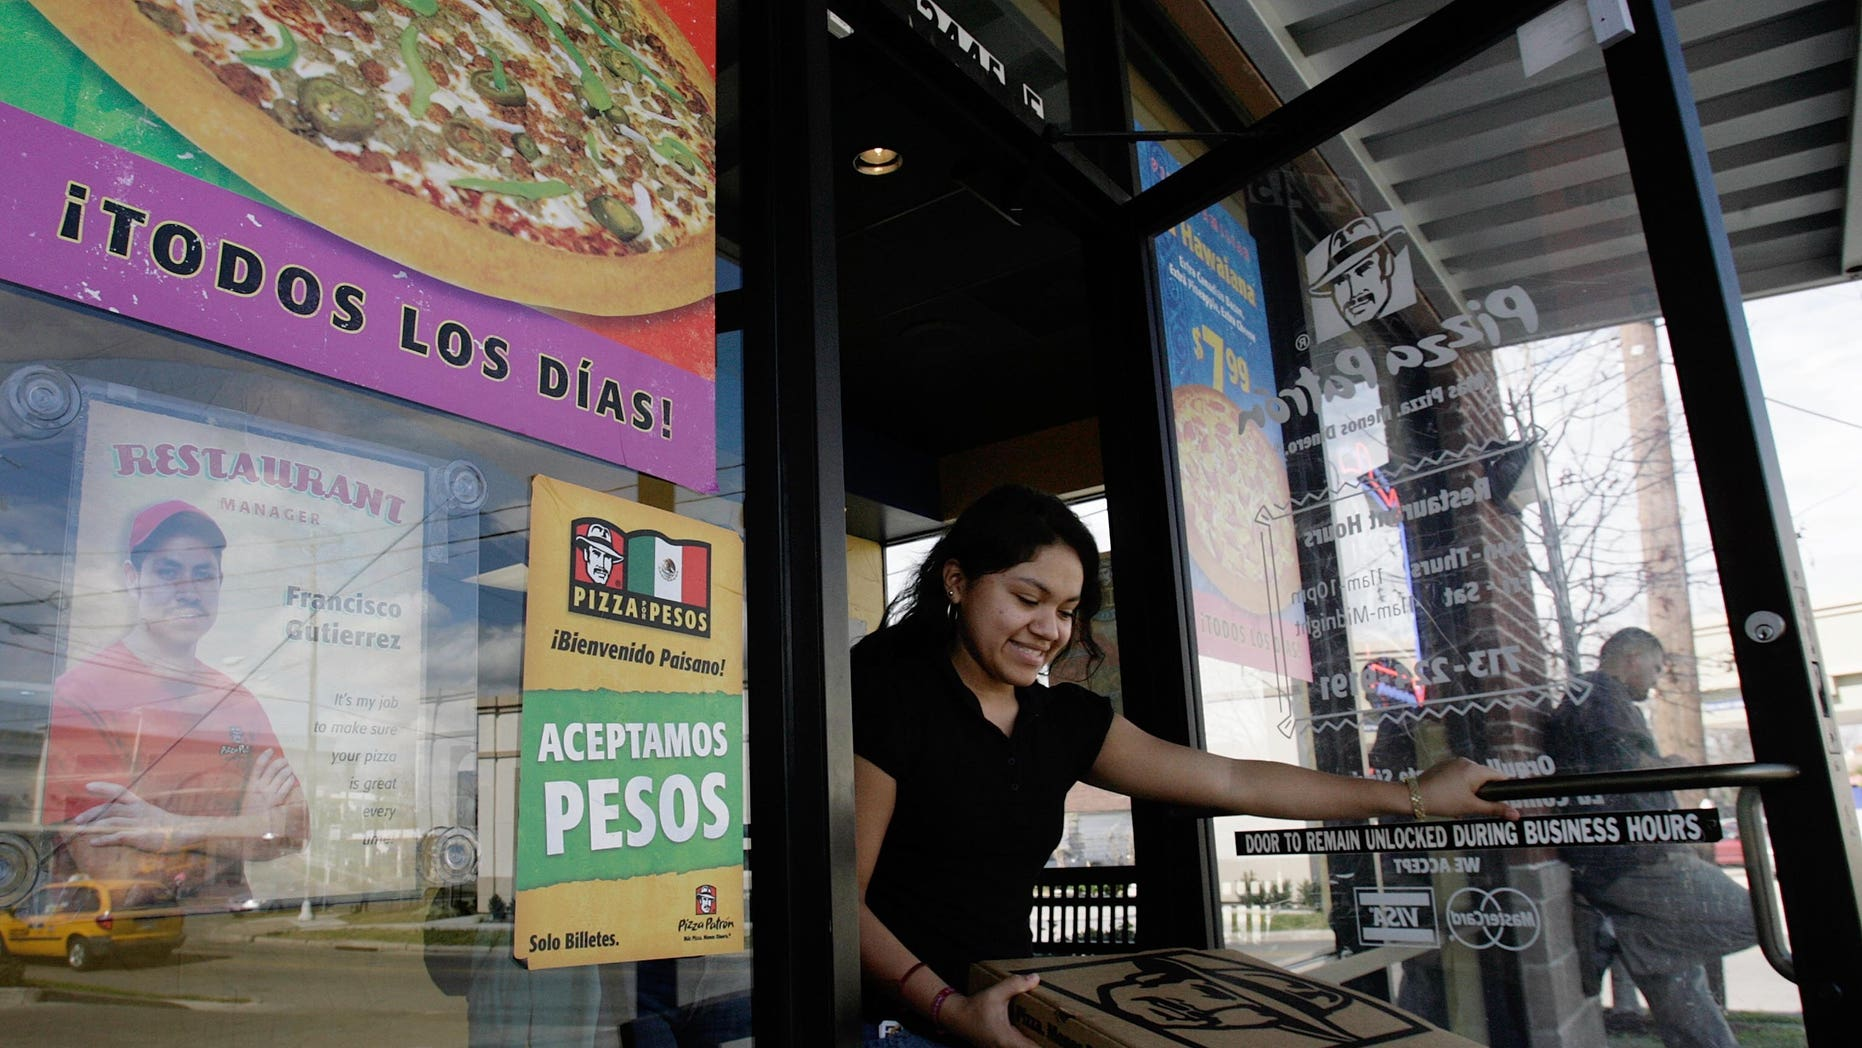 HOUSTON, TX - JANUARY 12:  A customer leaves a Pizza Patron January 12, 2007, in Houston. The pizza chain now accepts Mexican pesos and U.S. dollars as payment.  (Photo by Dave Einsel/Getty Images)